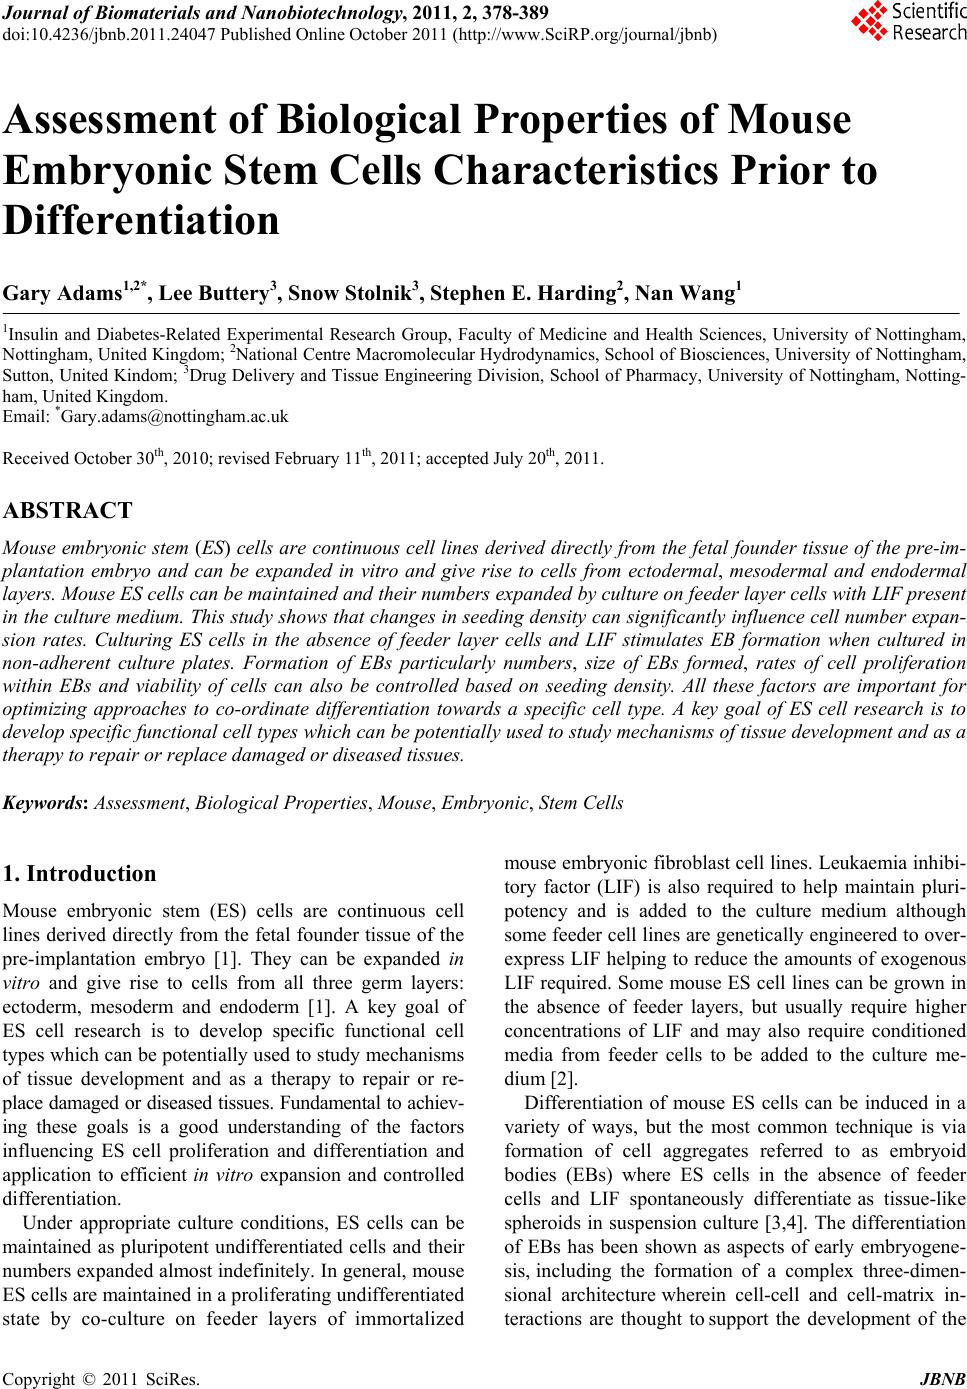 online the intersubjective mirror in infant learning and evolution of